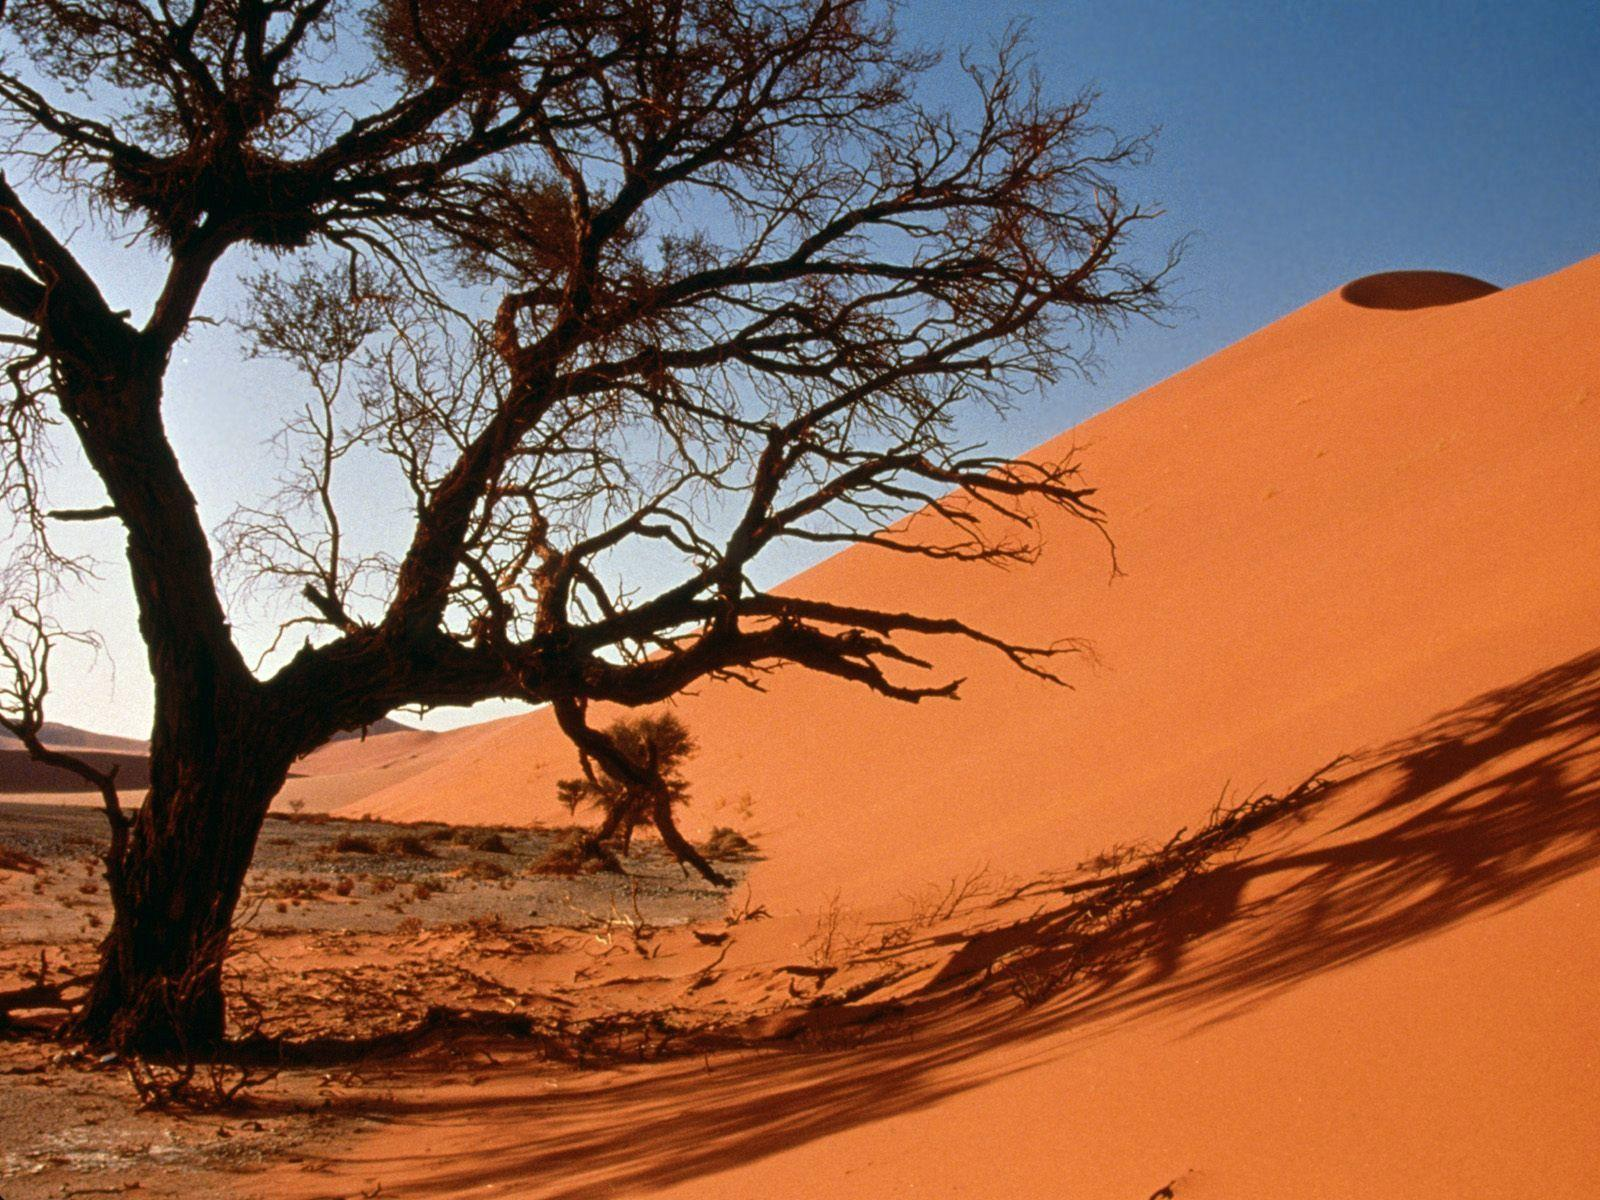 Sand Dunes, Central Africa